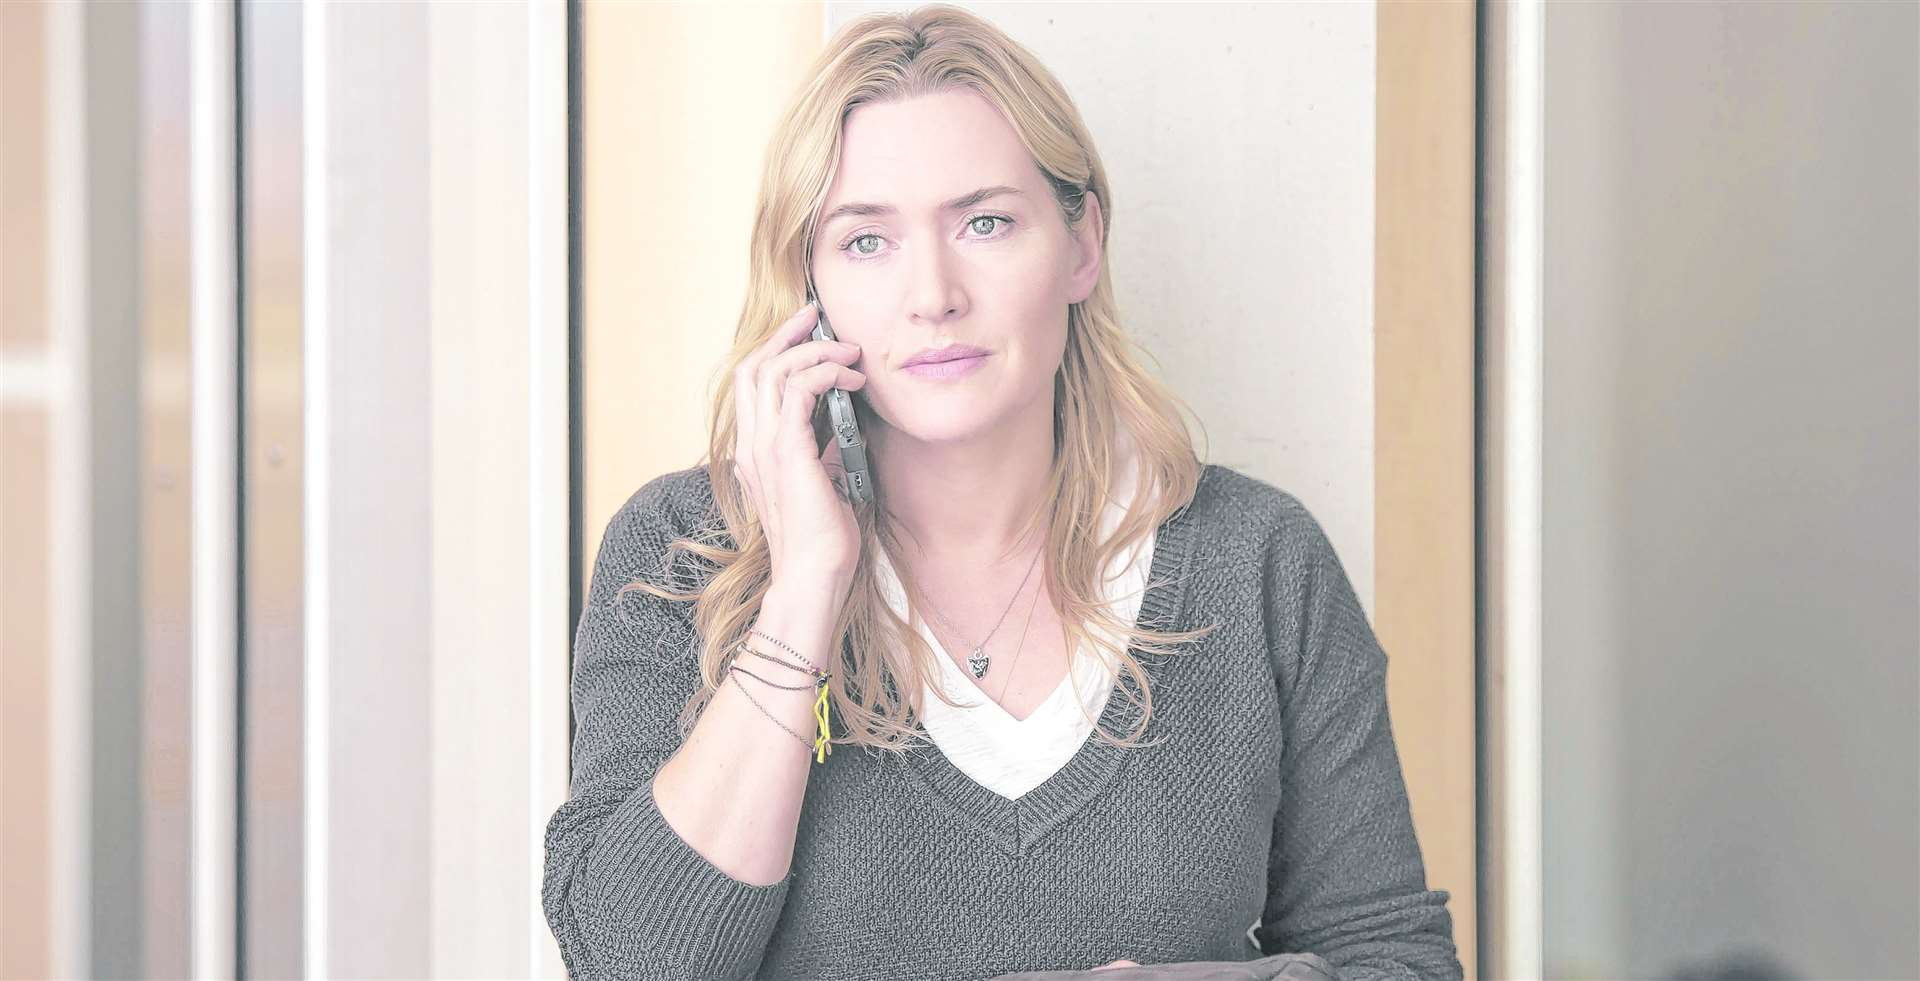 Kate Winslet will star in the French Dispatch later this year